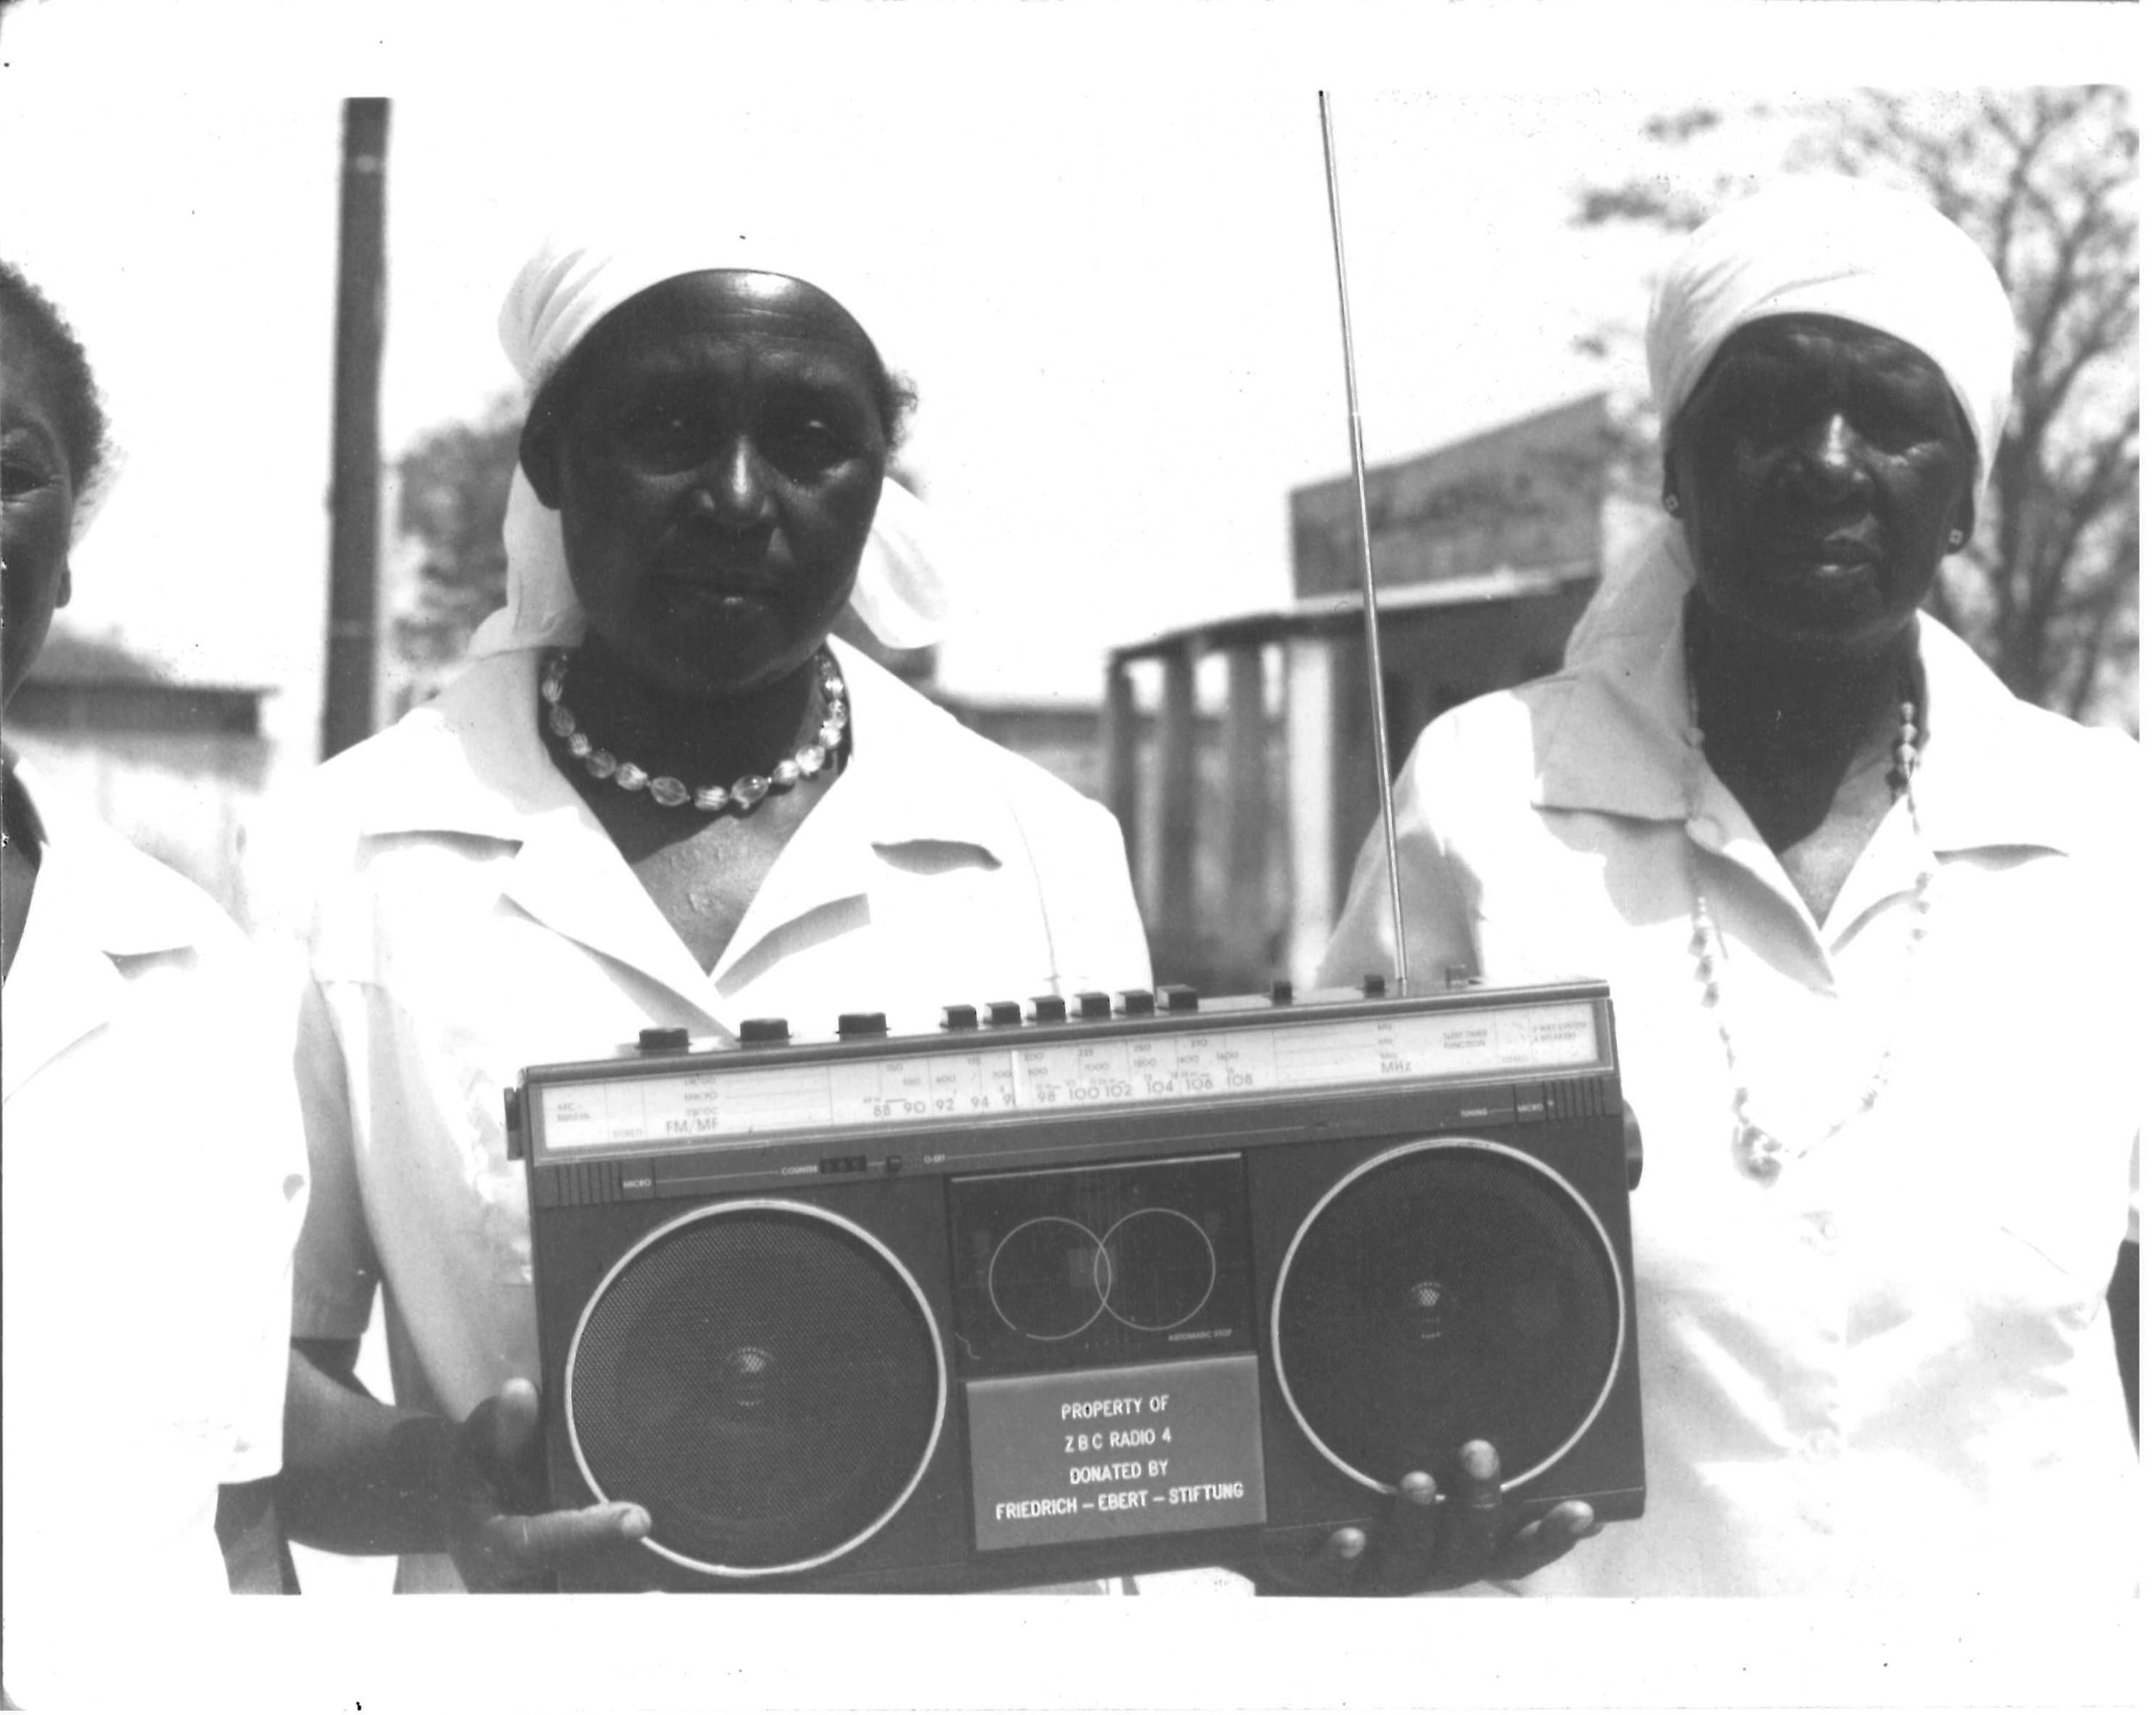 """Image: Two members of the Women's Radio Listening Club in Seke Zimbabwe hold a large radio.""""DTR Clubs - Seke receive free radios from FES [Friedrich Ebert Stiftung] – Germany org.""""];Date 1990s     The owner of the photo is Mavis Mayo and the photographer is Calvin Dondo."""